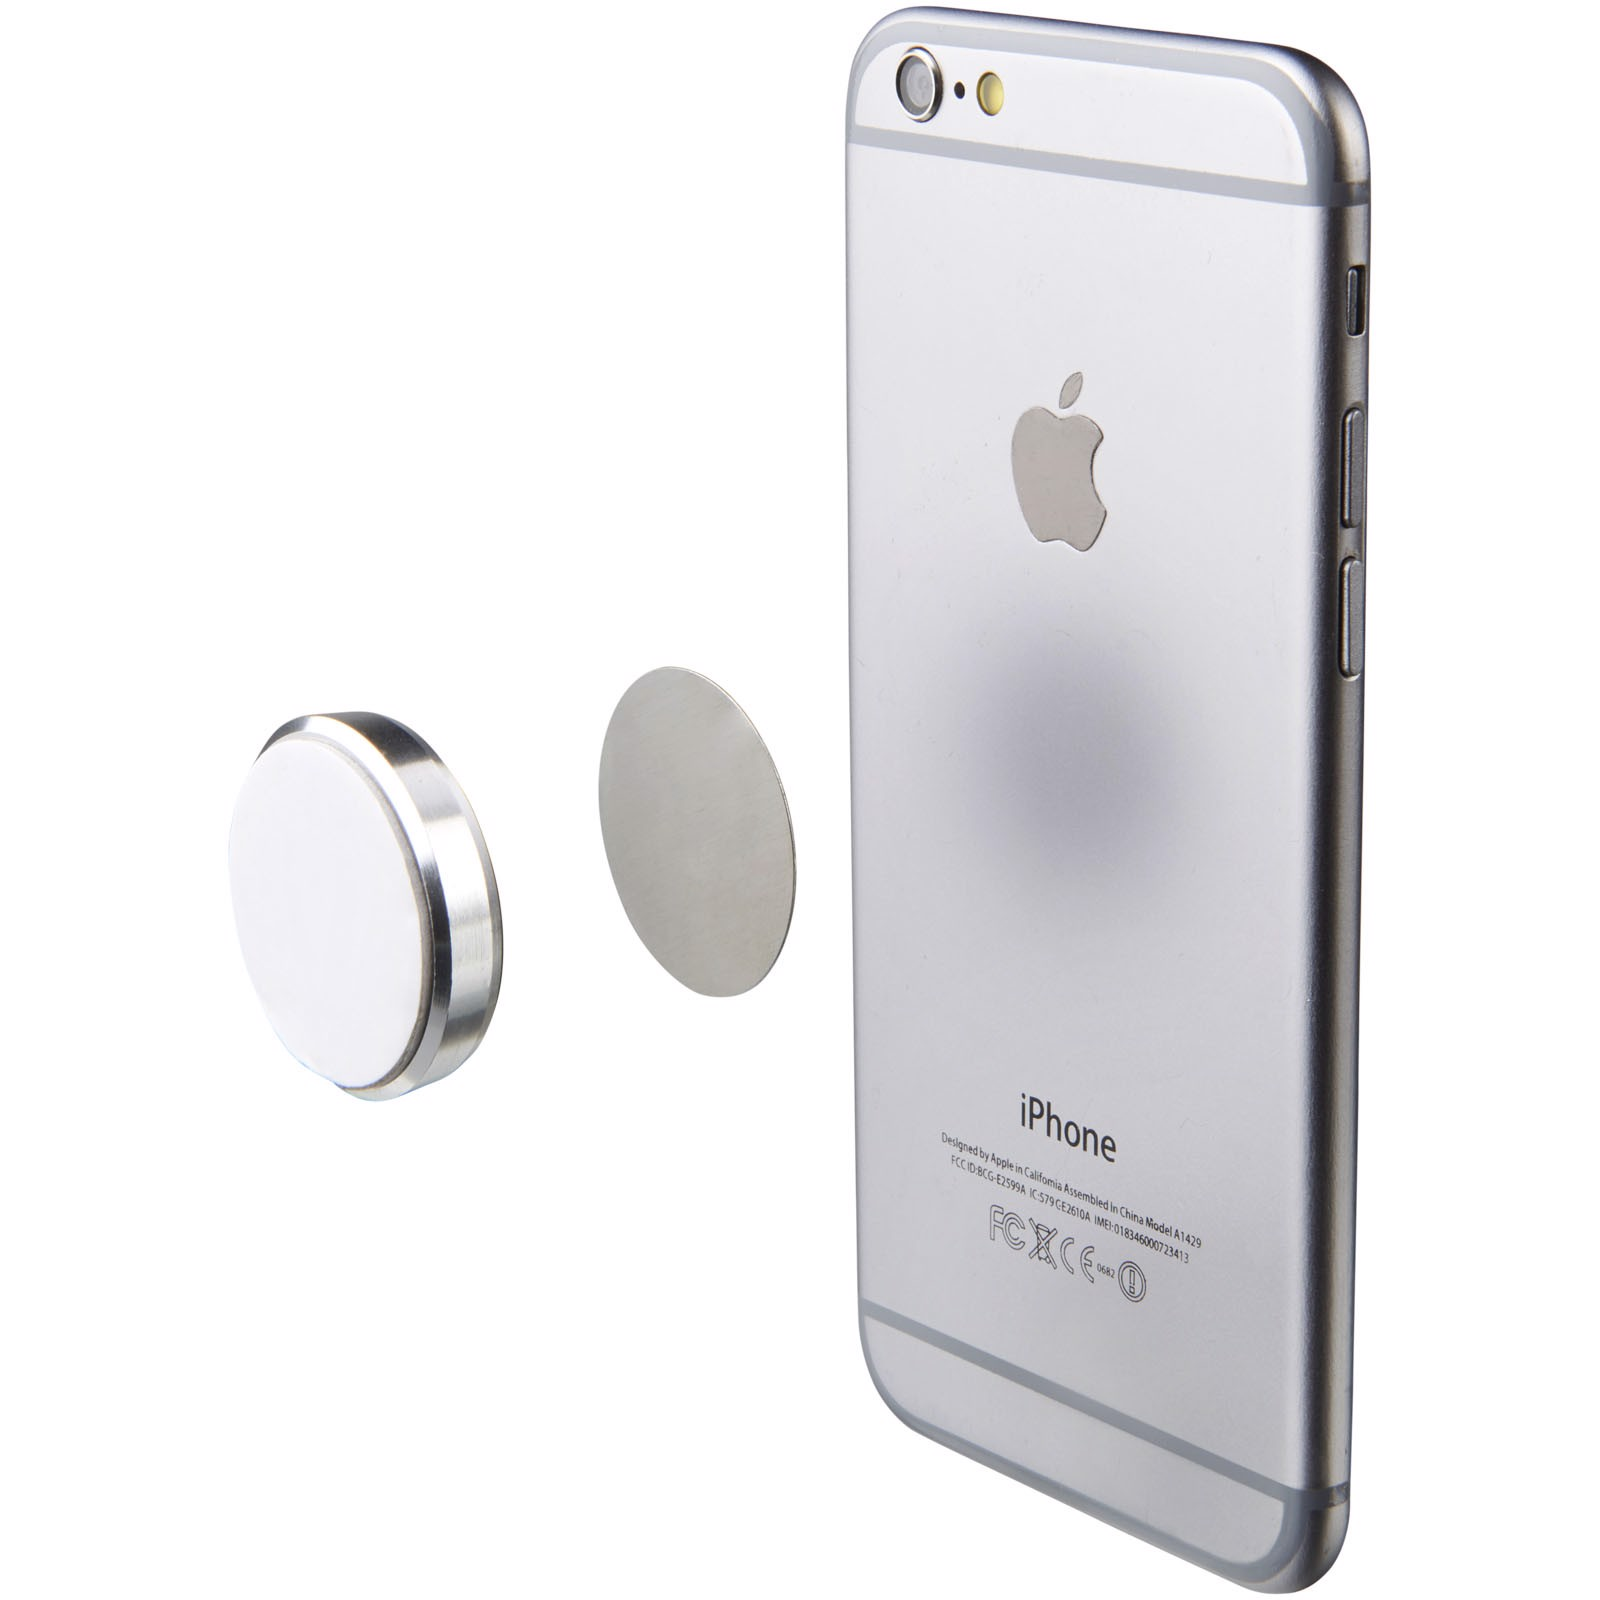 Glu magnetic phone sticky pad - Silver